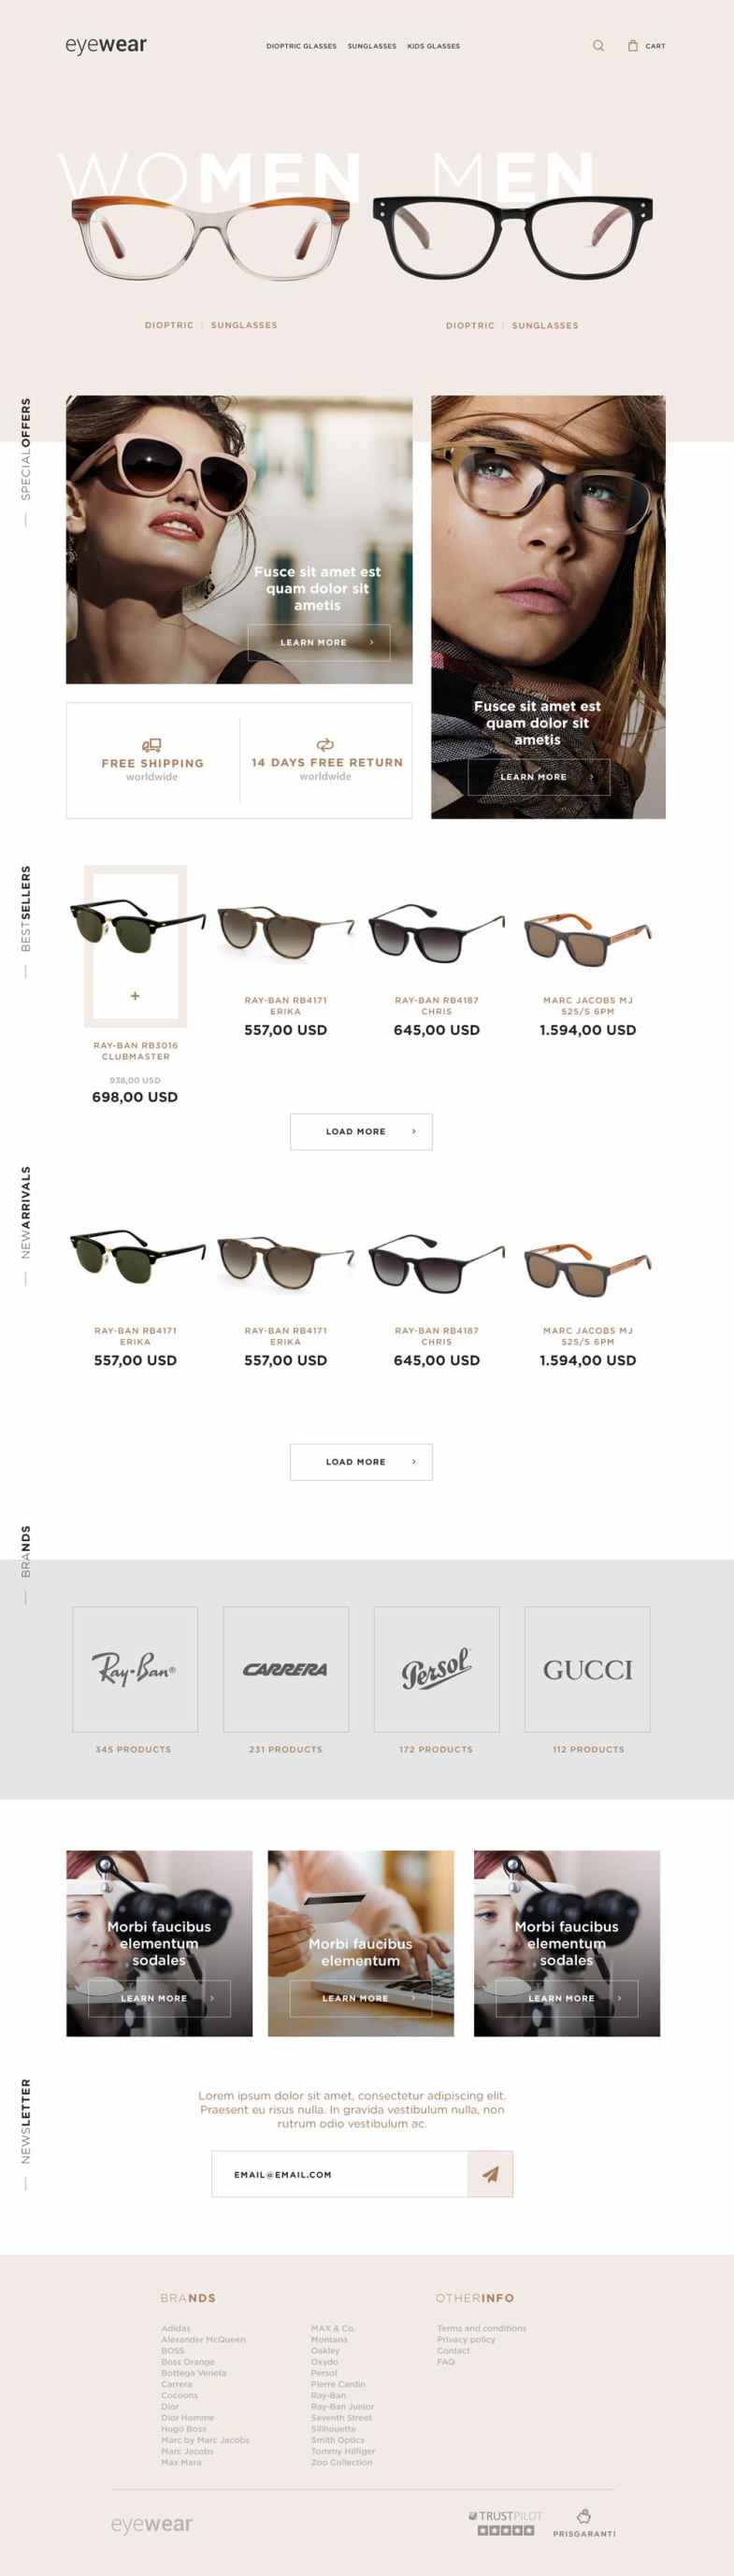 Eyewear E commerce Web Template PSD